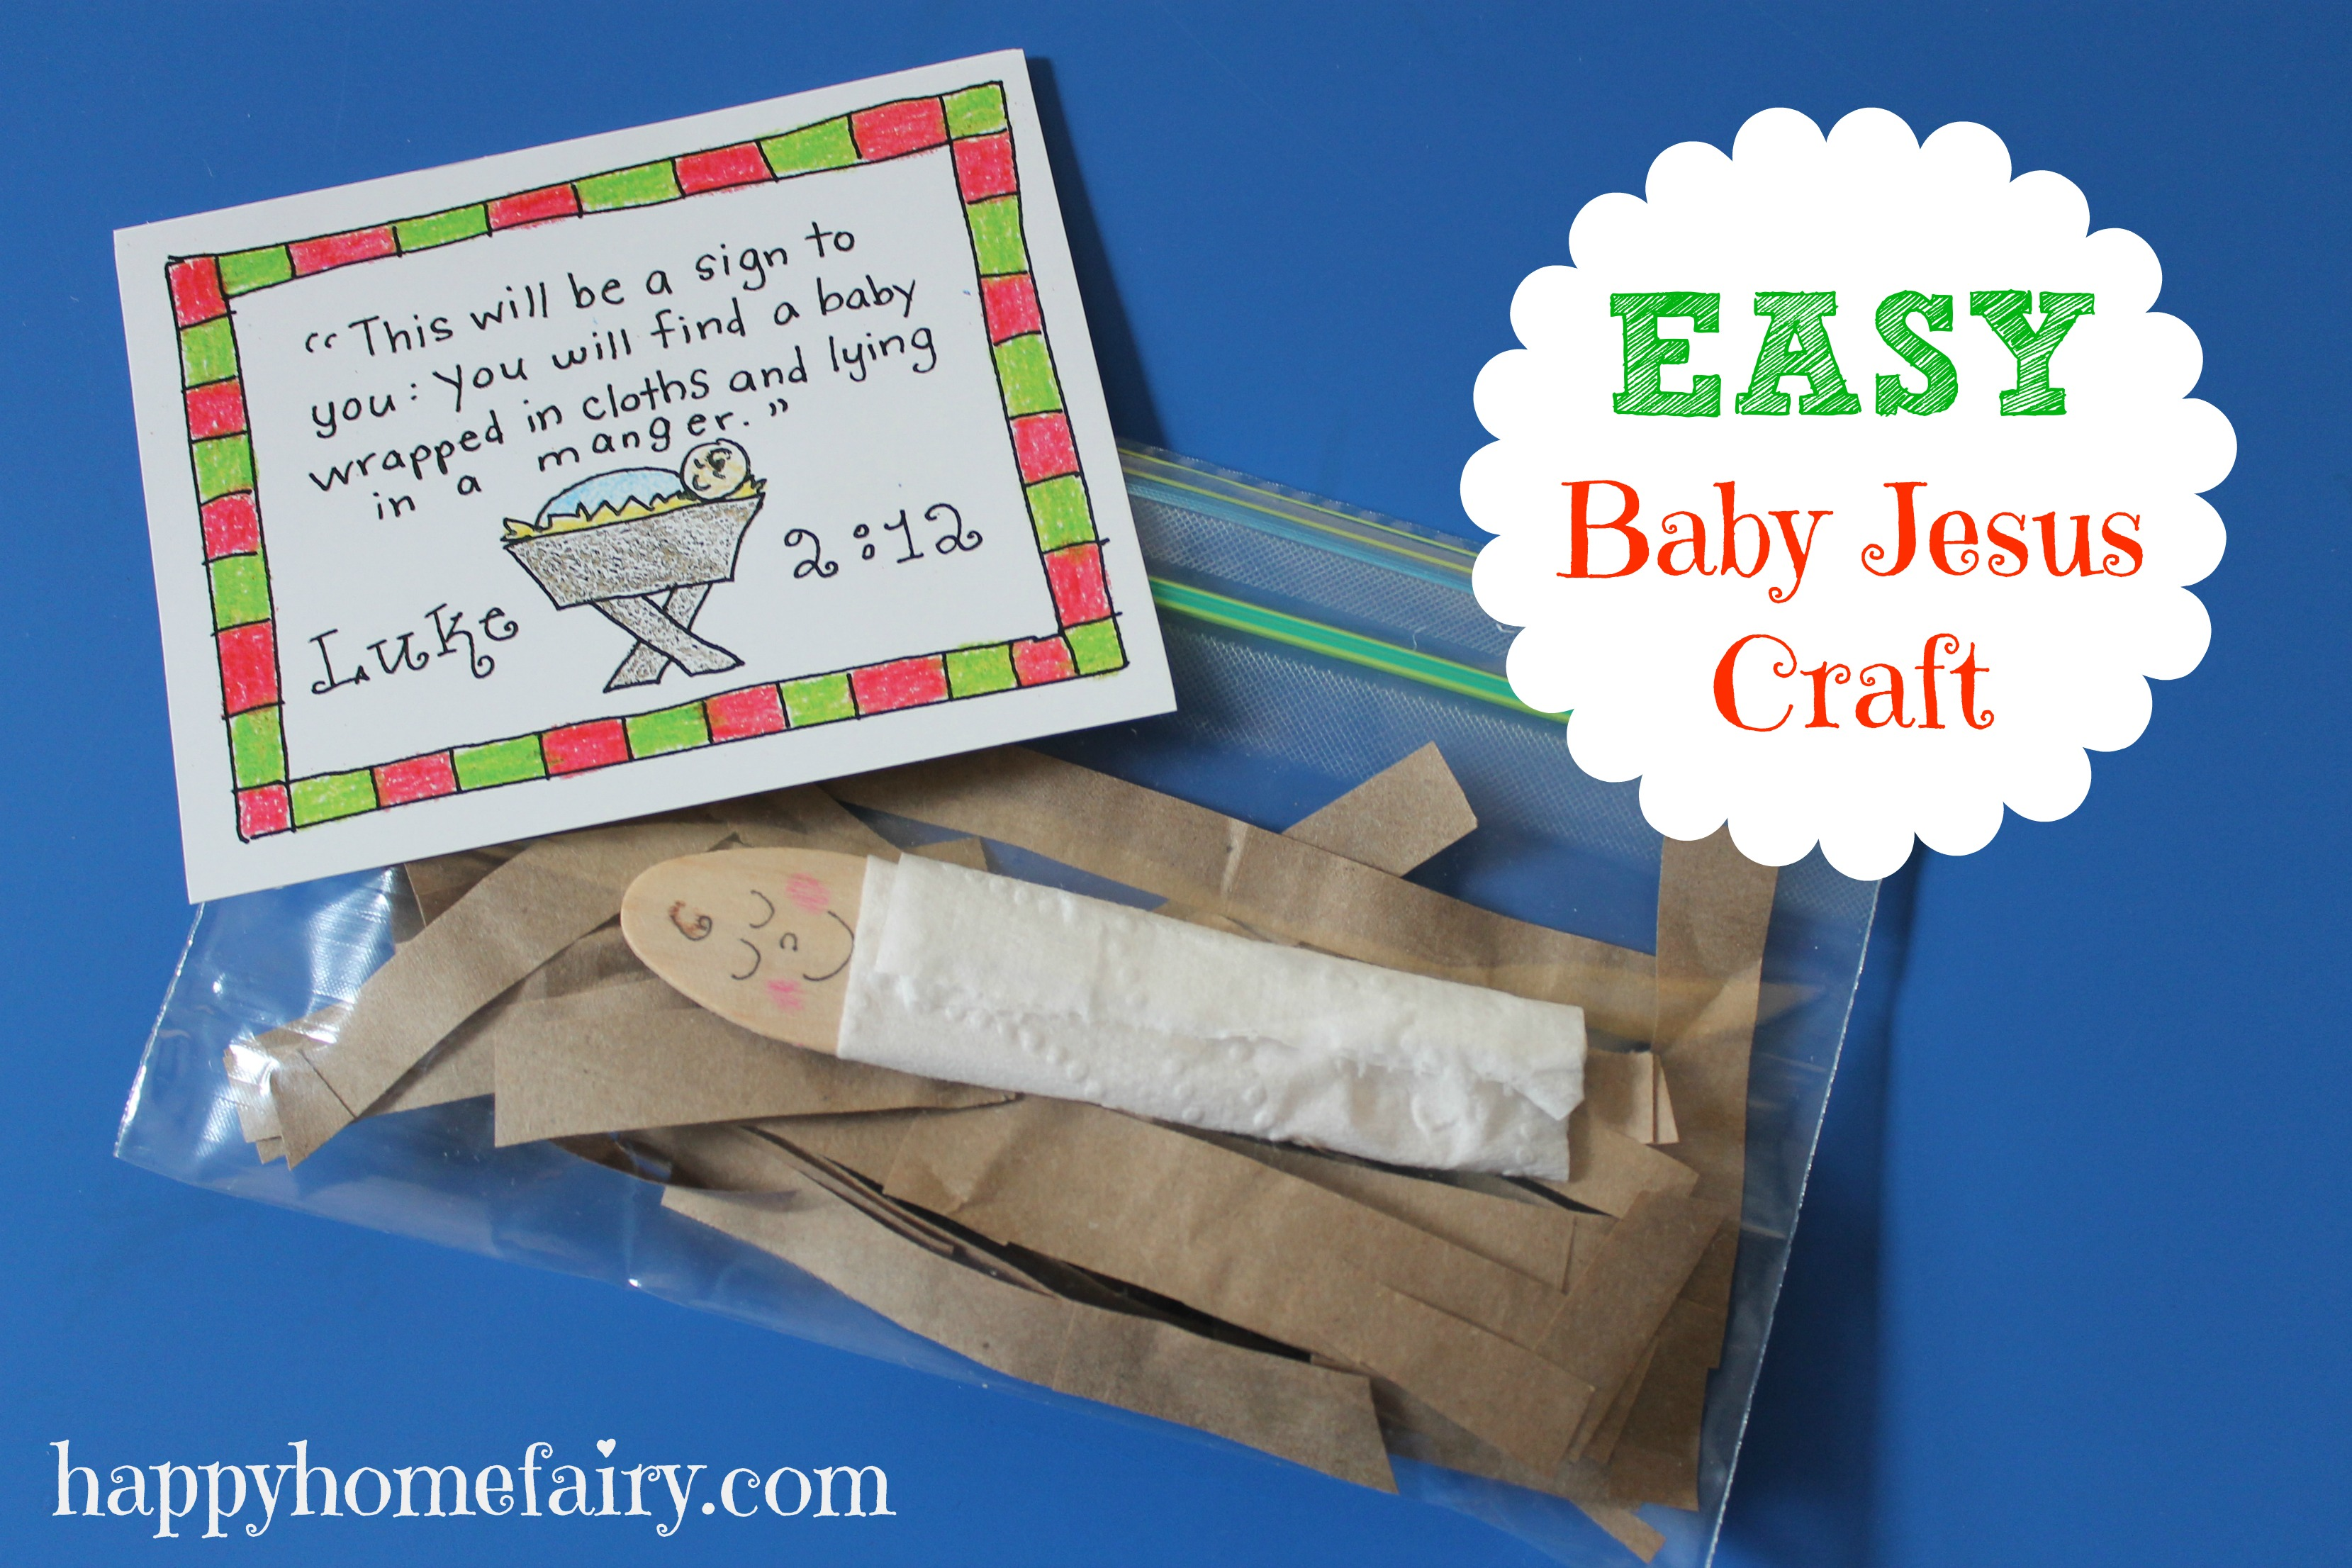 Baby Jesus Crafts And Ideas